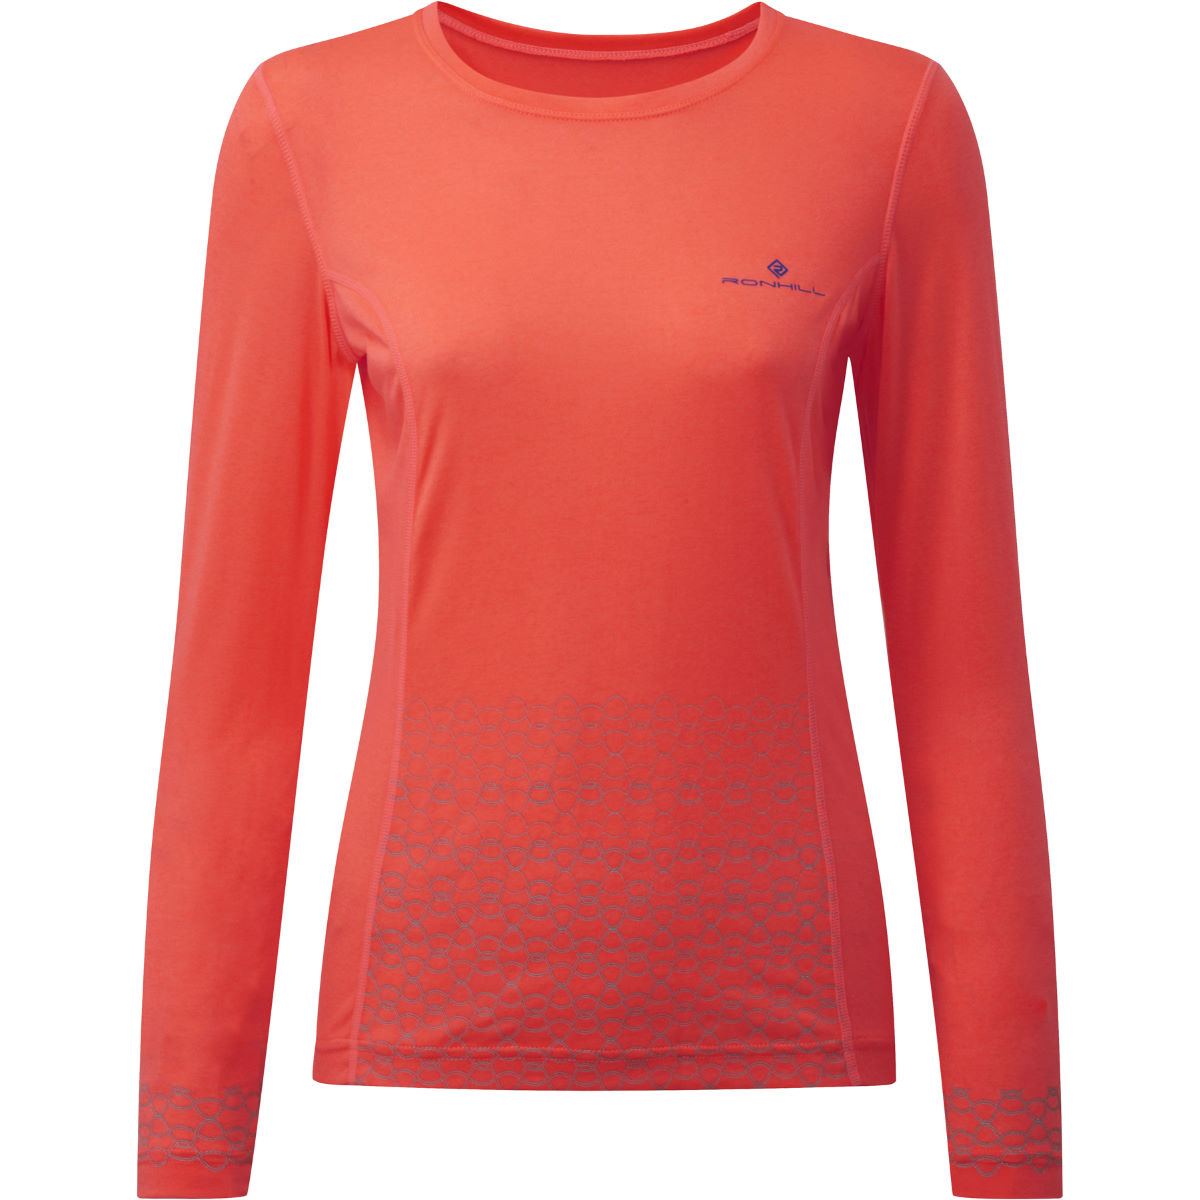 Maillot Femme Ronhill Momentum Sirius (manches longues) - XS